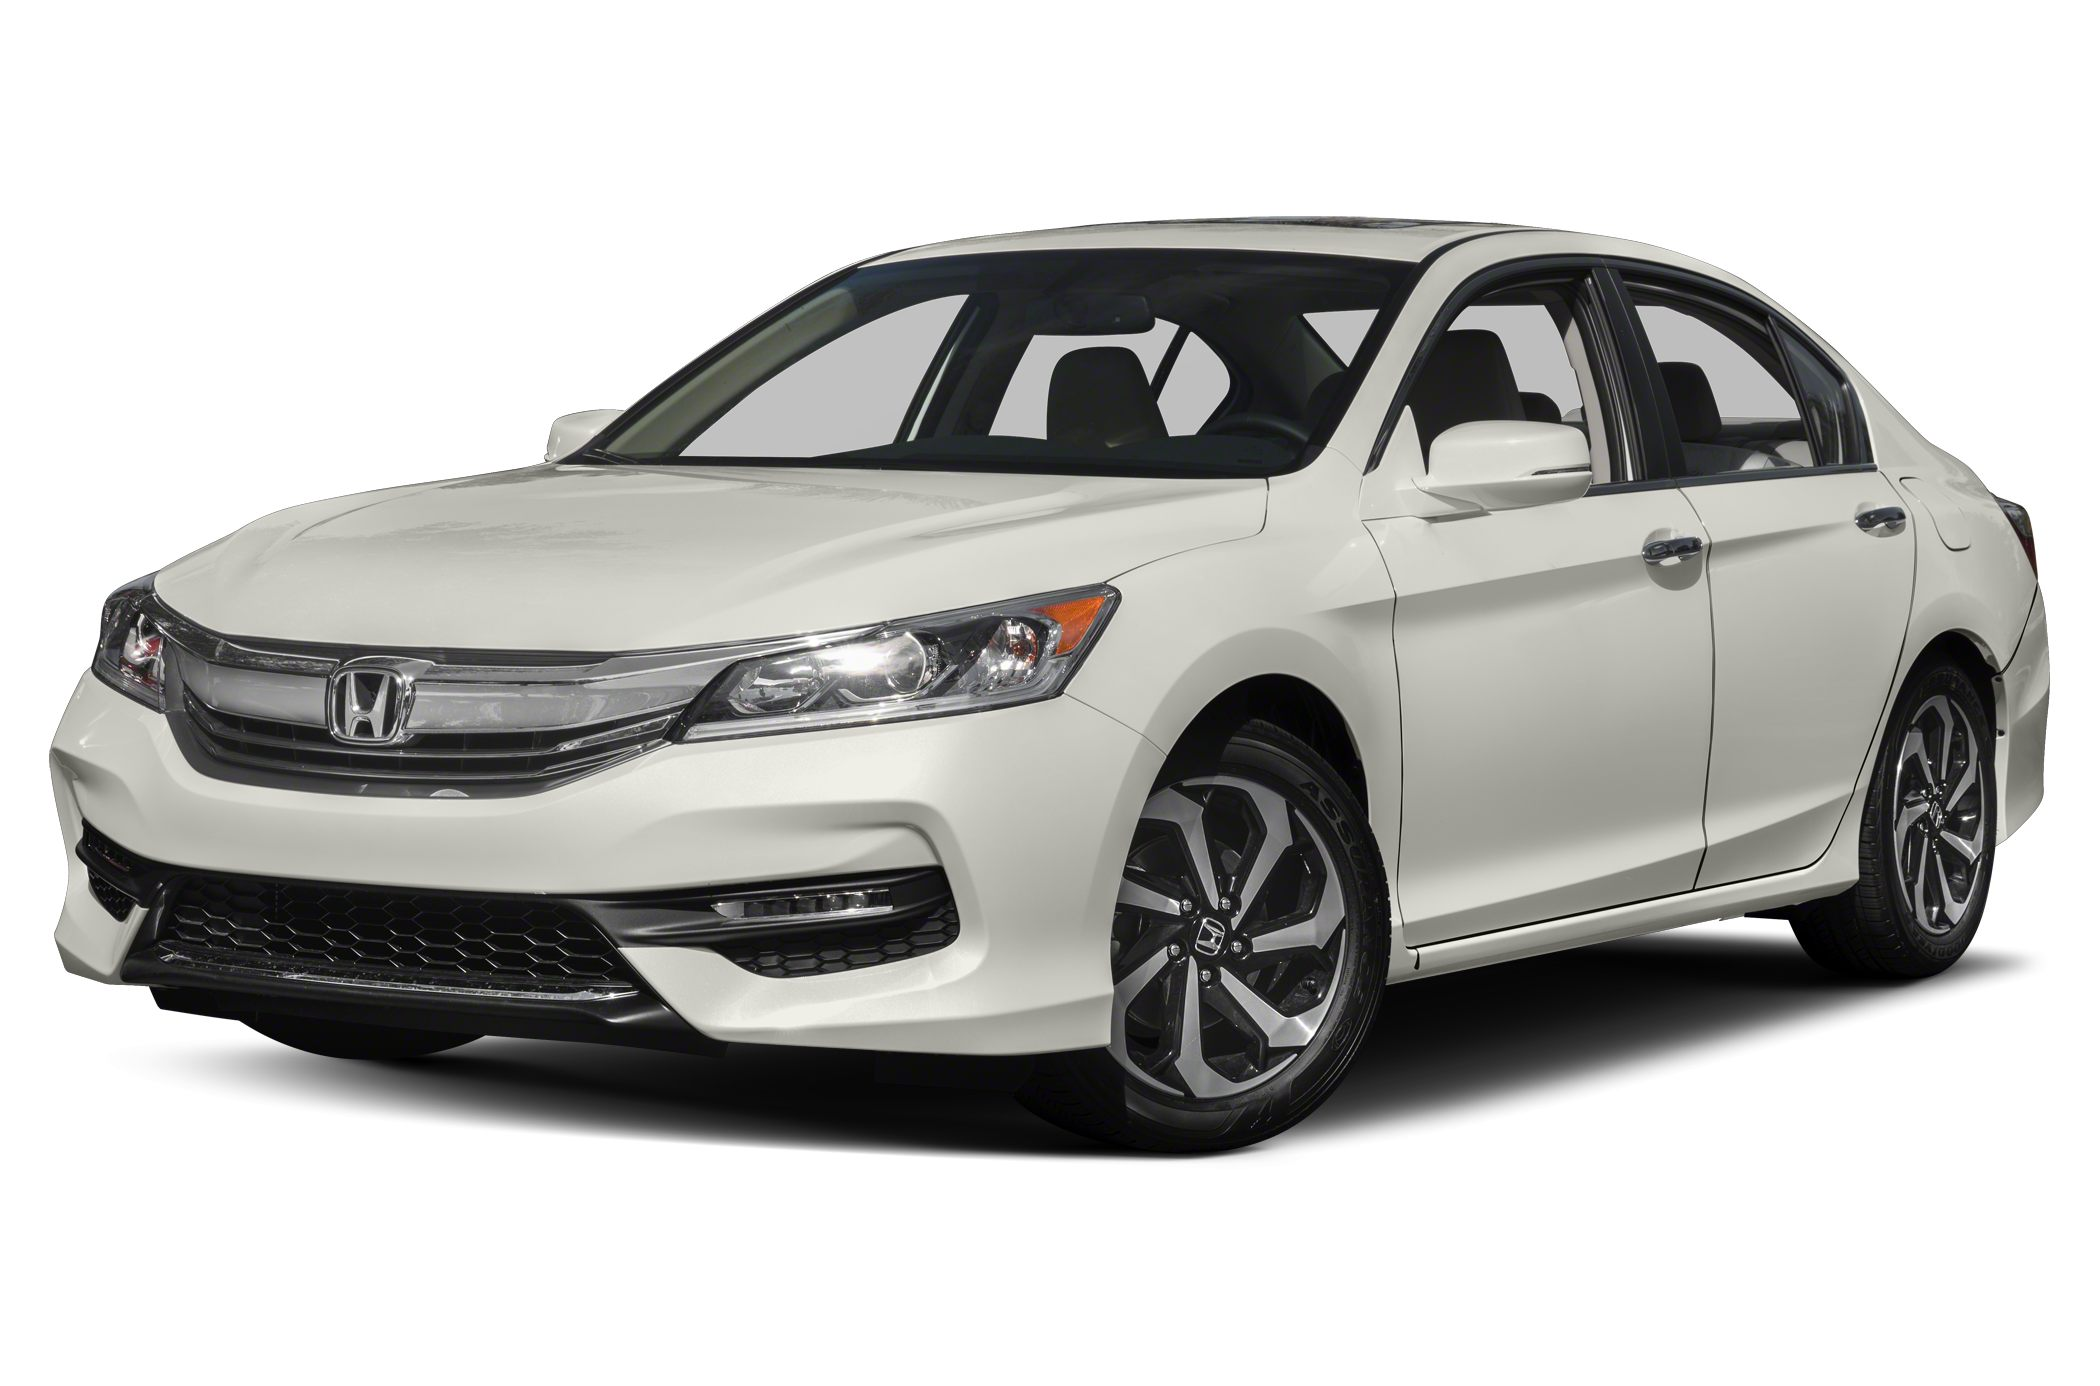 Honda Accord Ex >> 2017 Honda Accord Ex L 4dr Sedan Pricing And Options